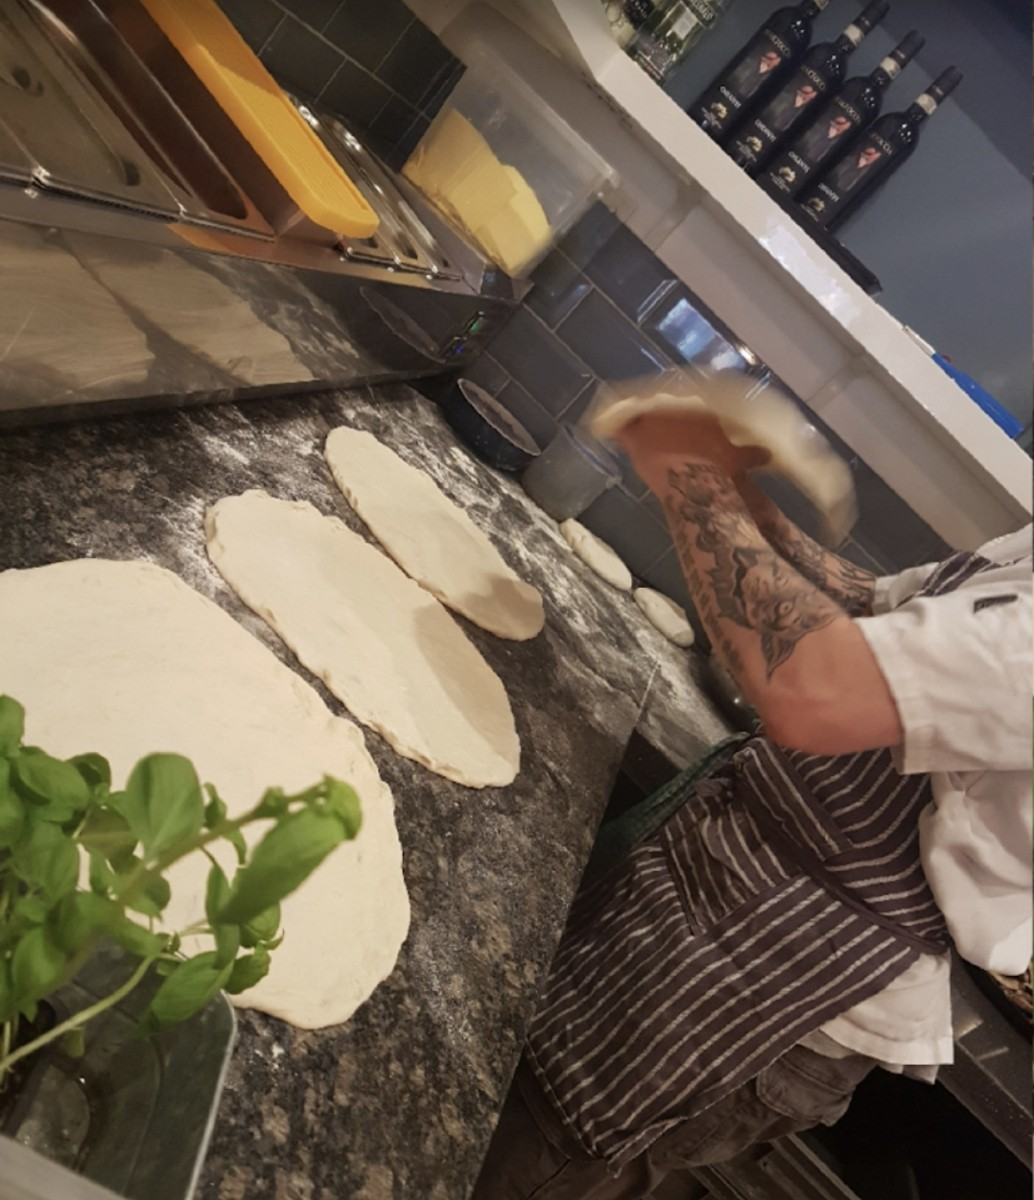 Established Neapolitan Wood-fired pizza, Prominent High St position, Fully equipped, Gozney oven - Image 8